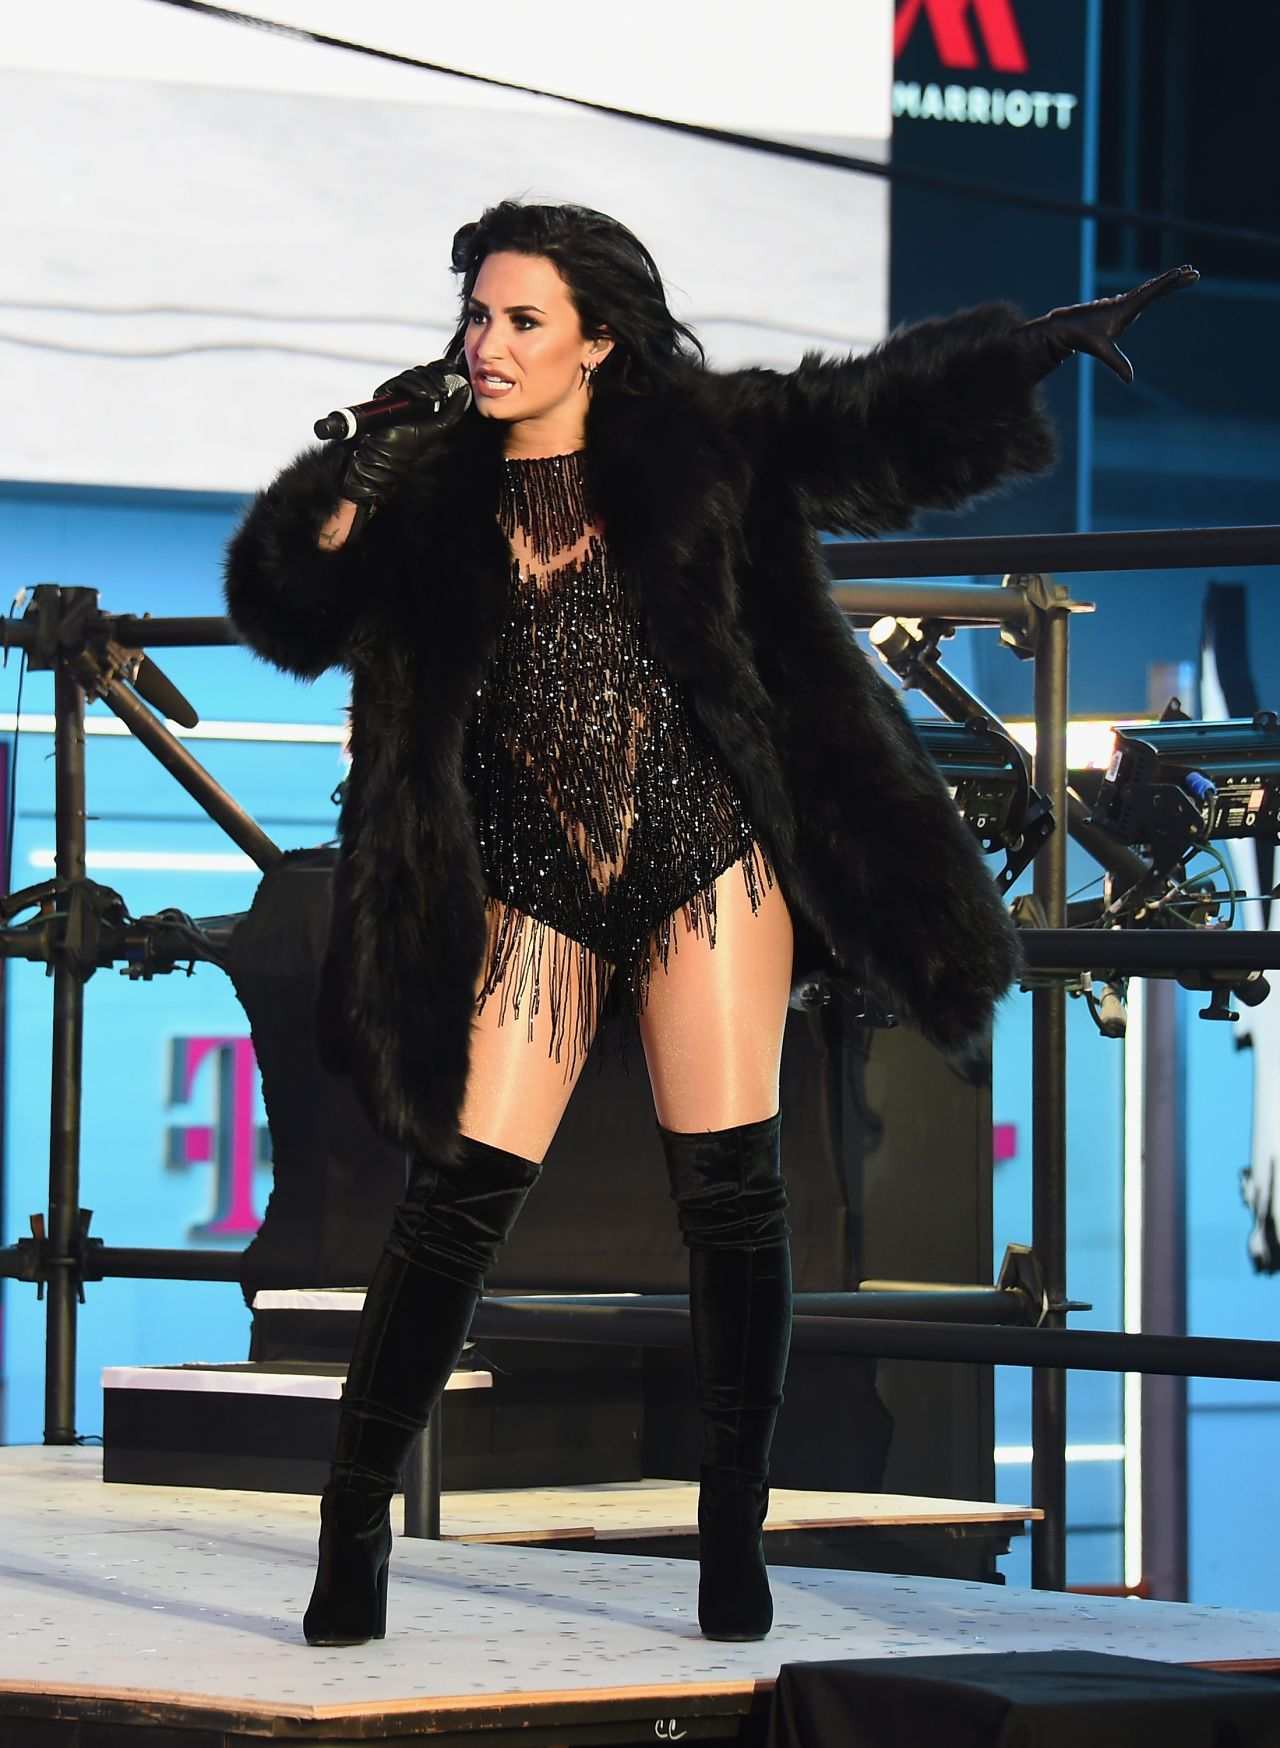 demi-lovato-performing-in-times-square-ny-new-year-s-rockin-eve-1